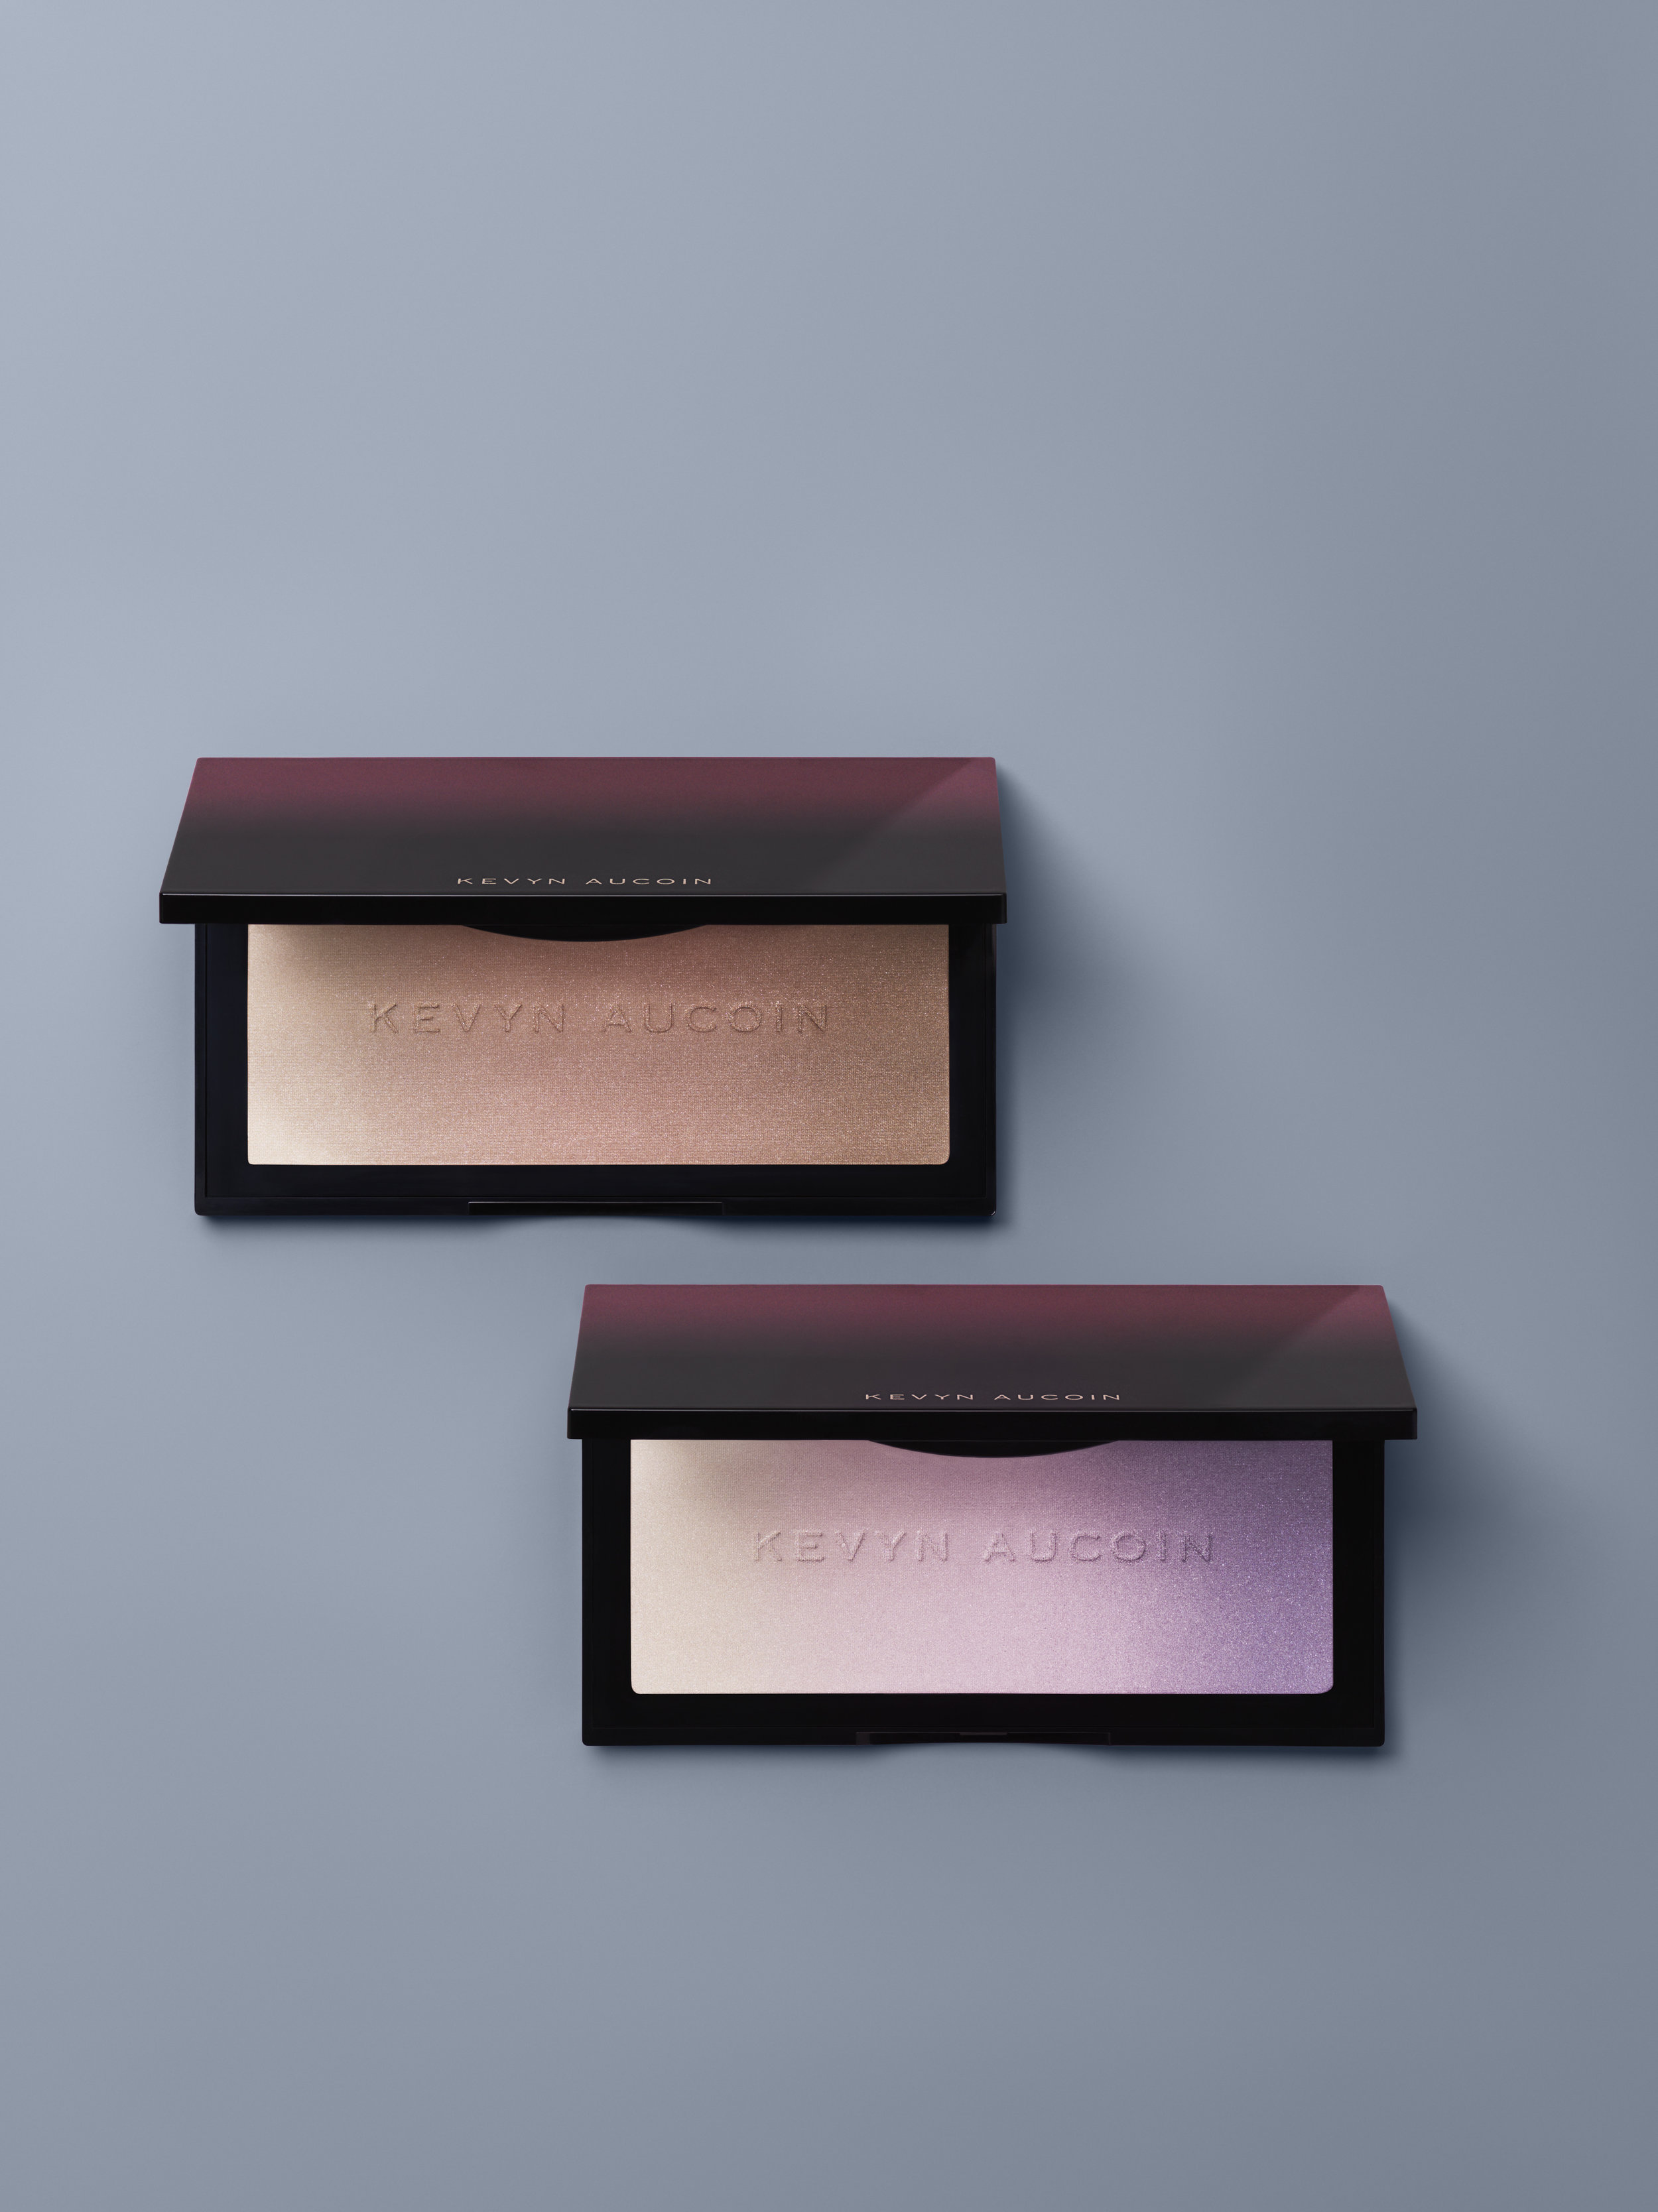 KEVYN AUCOIN / 12 IMAGES